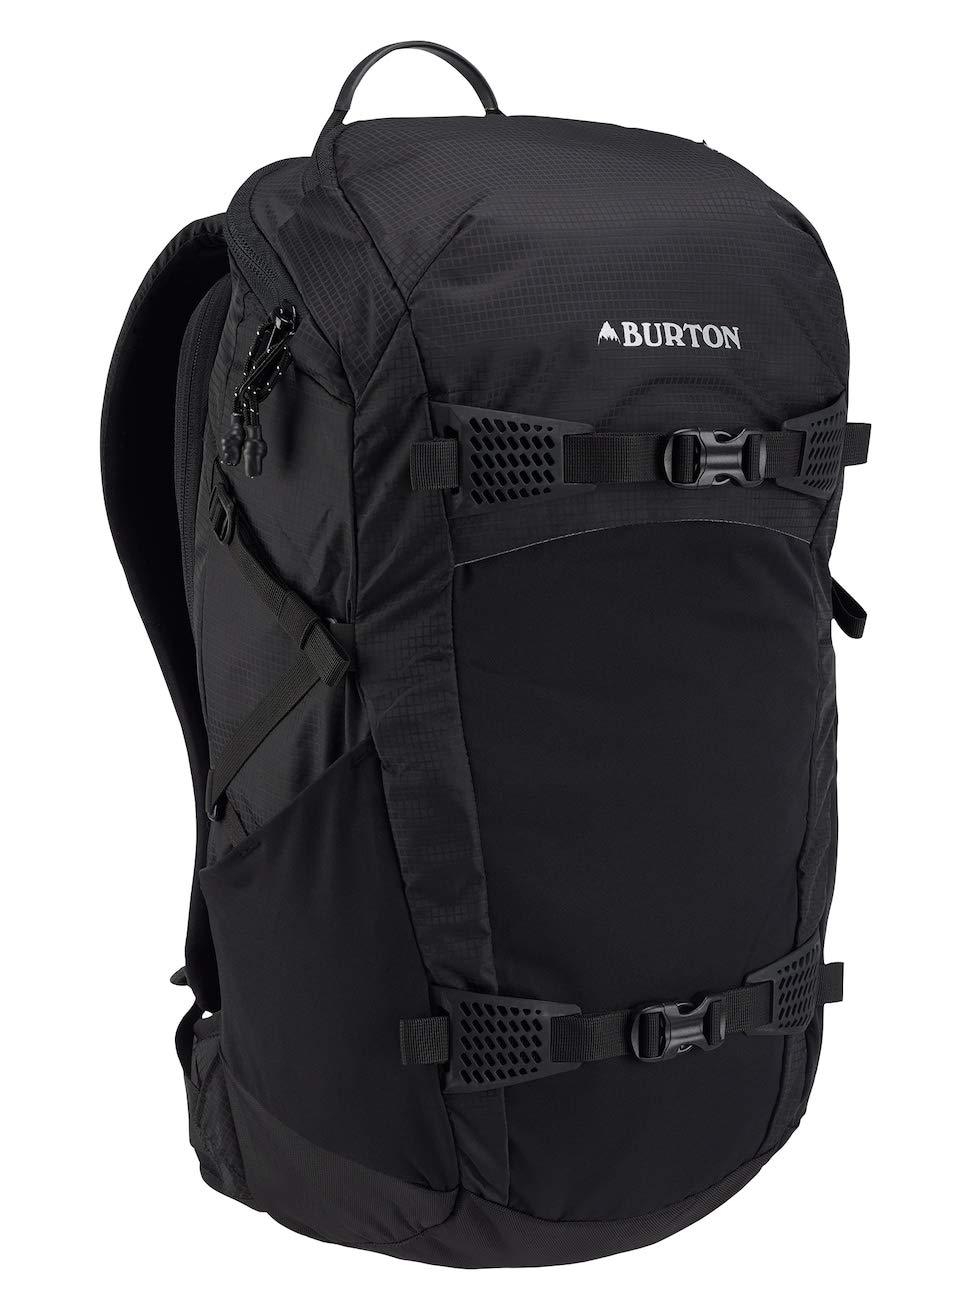 Day Hiker 31L BURTON